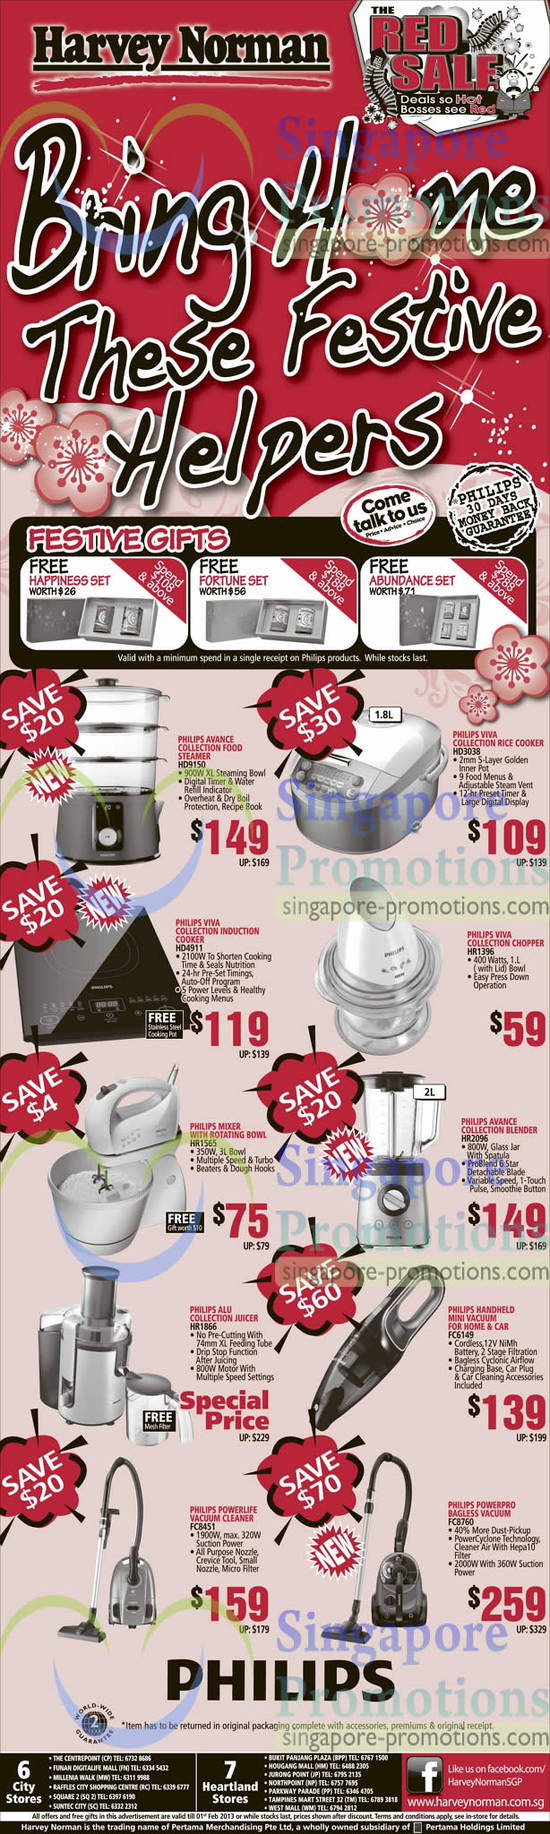 Philips HD9150 Food Steamer, Philips HD3038 Rice Cooker, Philps HD4911 Induction Cooker, Philips HR1396 Chopper, Philips HR1565 Mixer, Philips HR2096 Blender, Philips HR1866 Juicer, Philips FC6149 Vacuum Cleaner, Philips FC8451 Vacuum Cleaner, Philips FC8760 Vacuum Cleaner